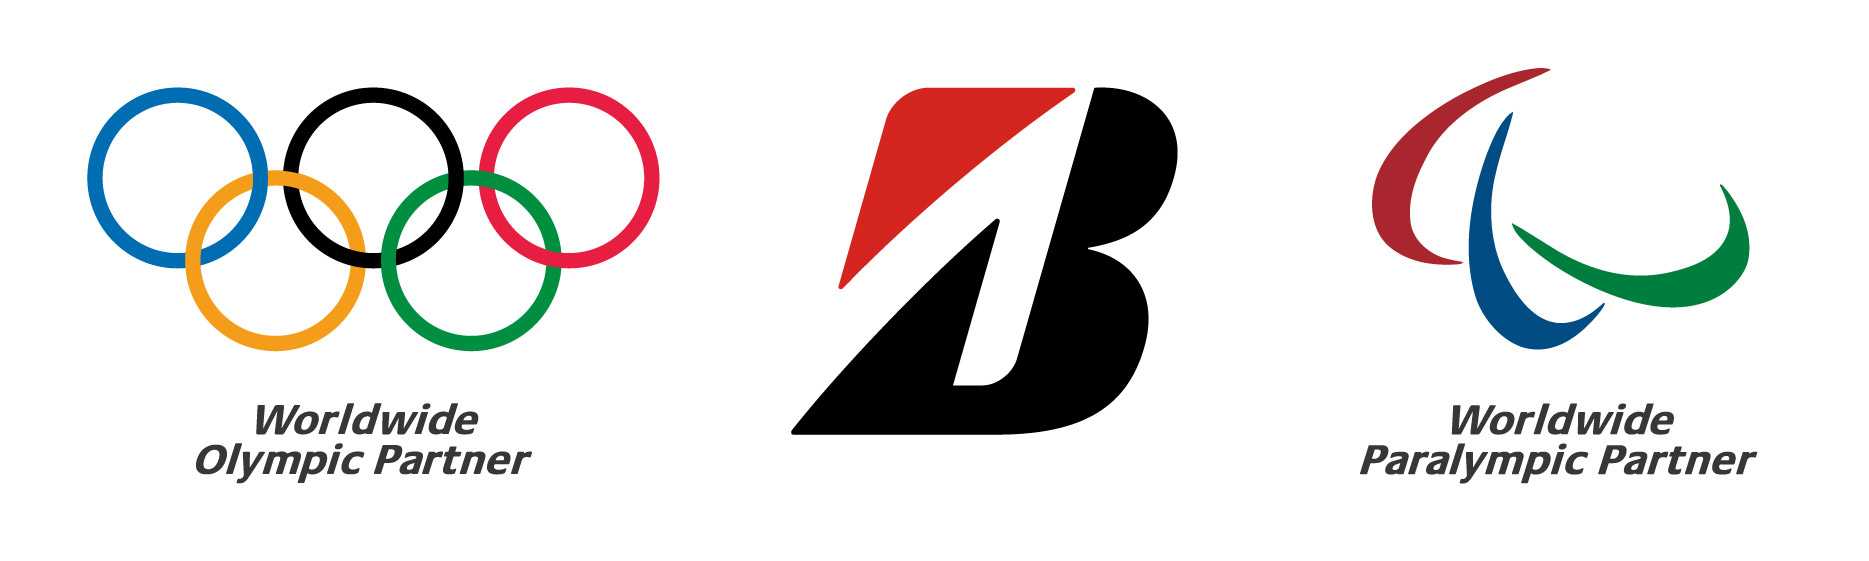 BRIDGESTONE IS PROUD TO BE A WORLDWIDE OLYMPIC PARTNER